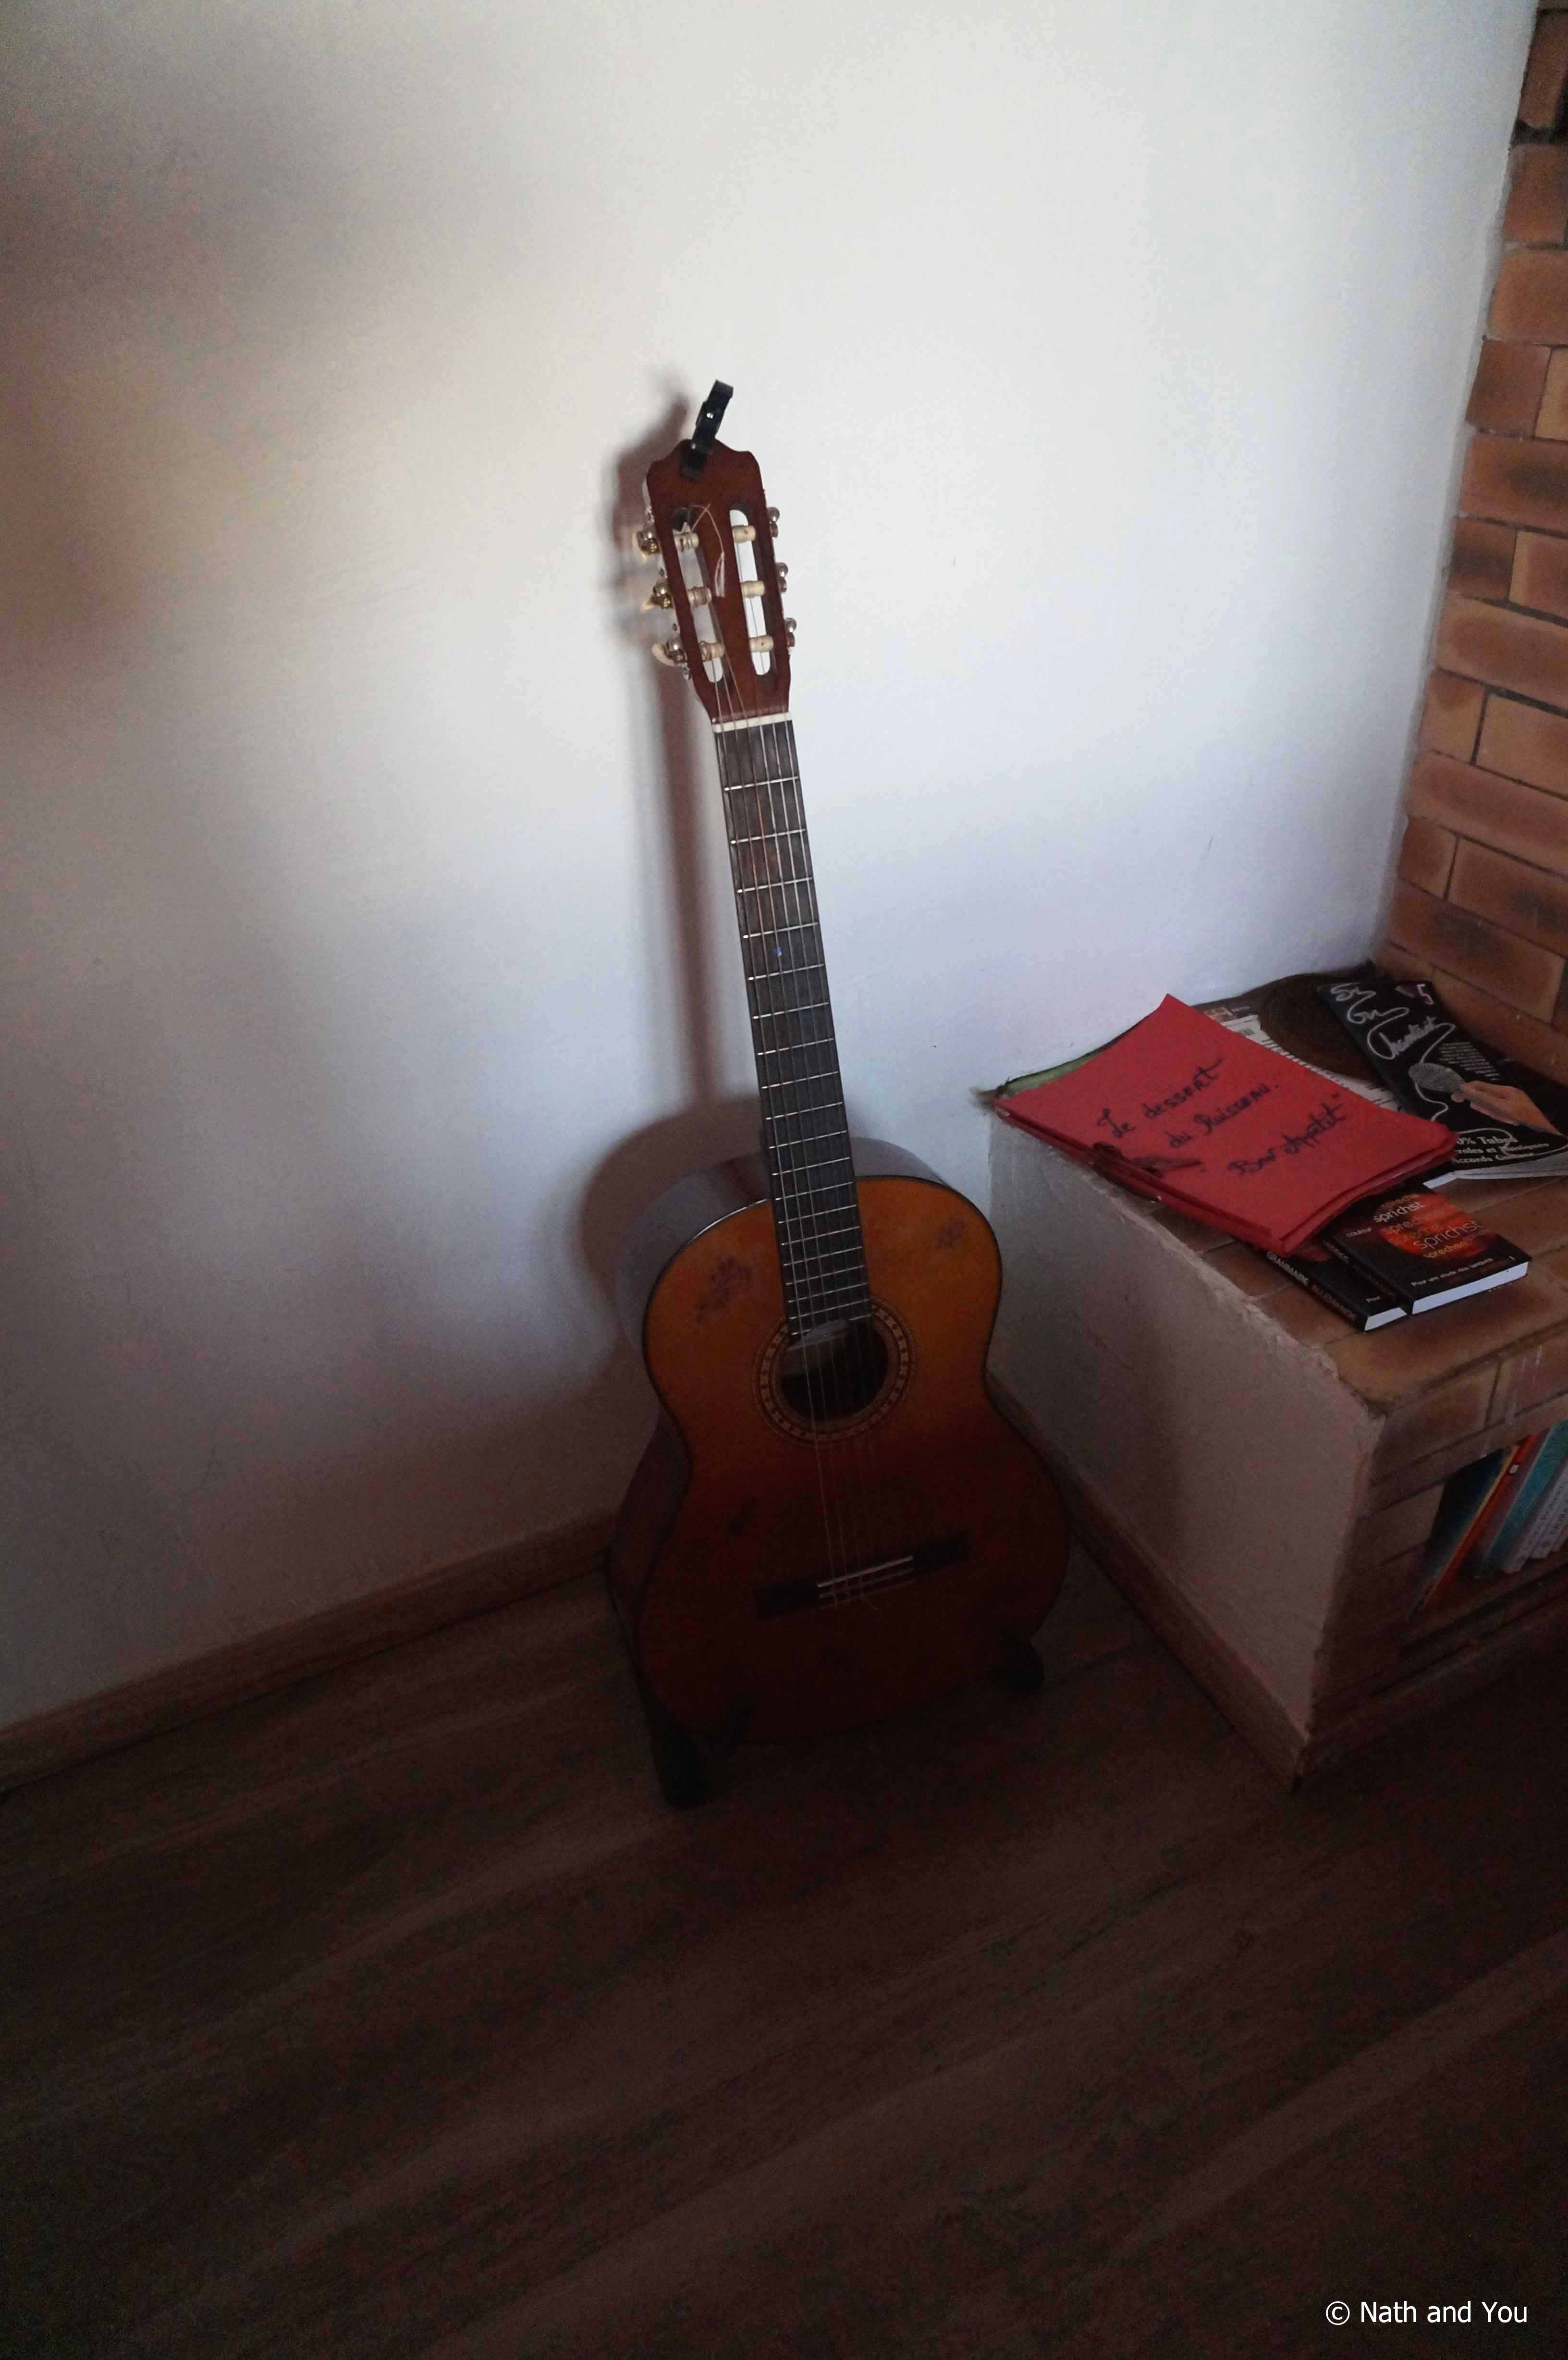 Guitare-Philippe-Le-Ruisseau-Reunion-Nath-and-You